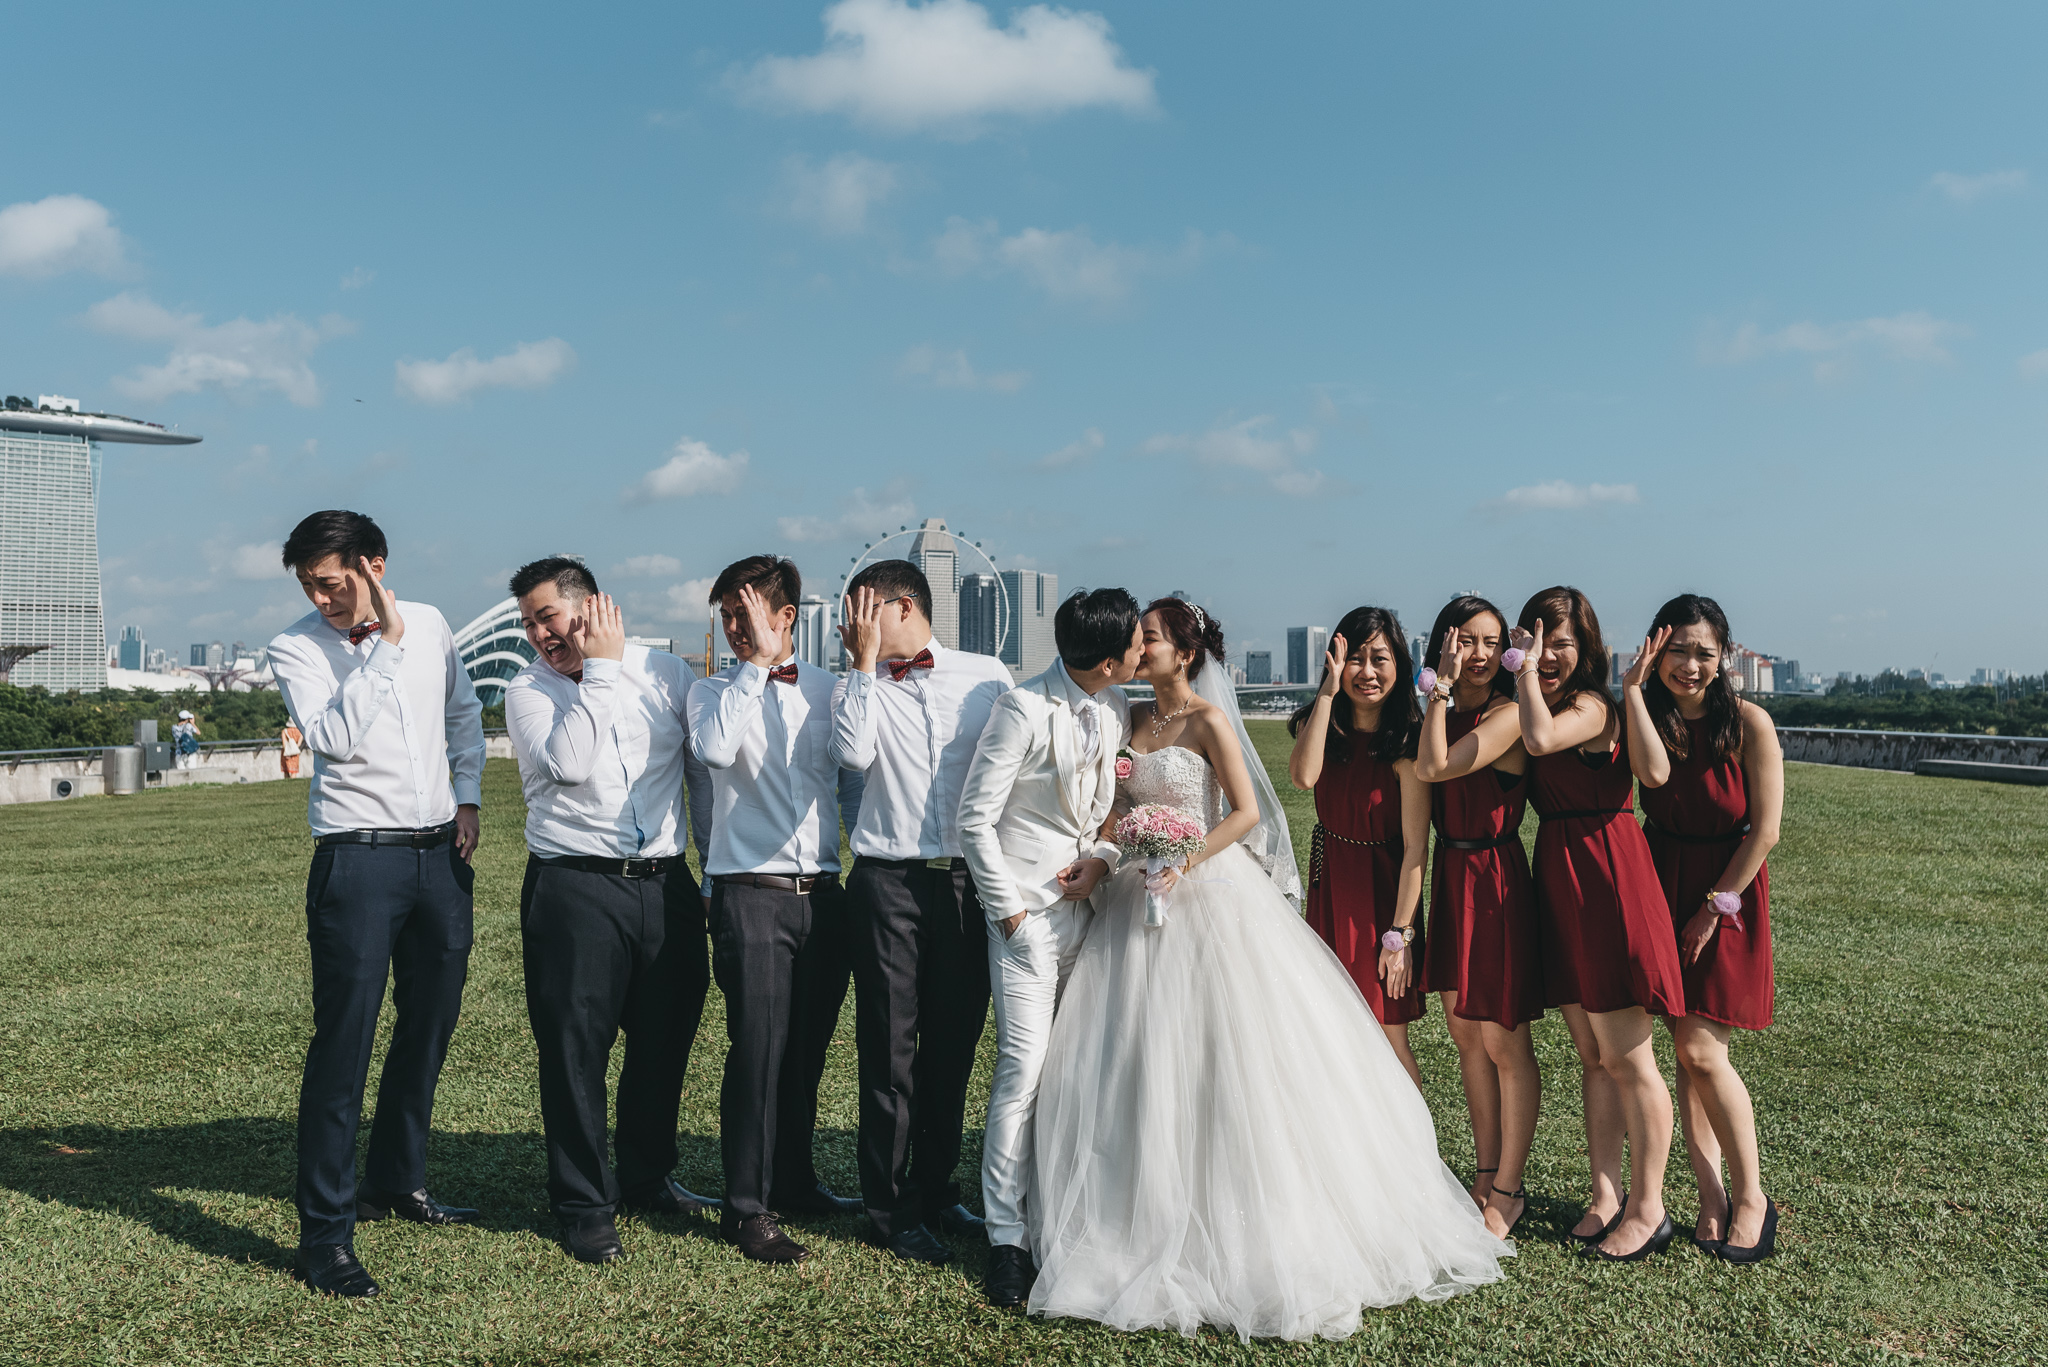 Fiona & Terence Wedding Day Highlights (resized for sharing) - 157.jpg